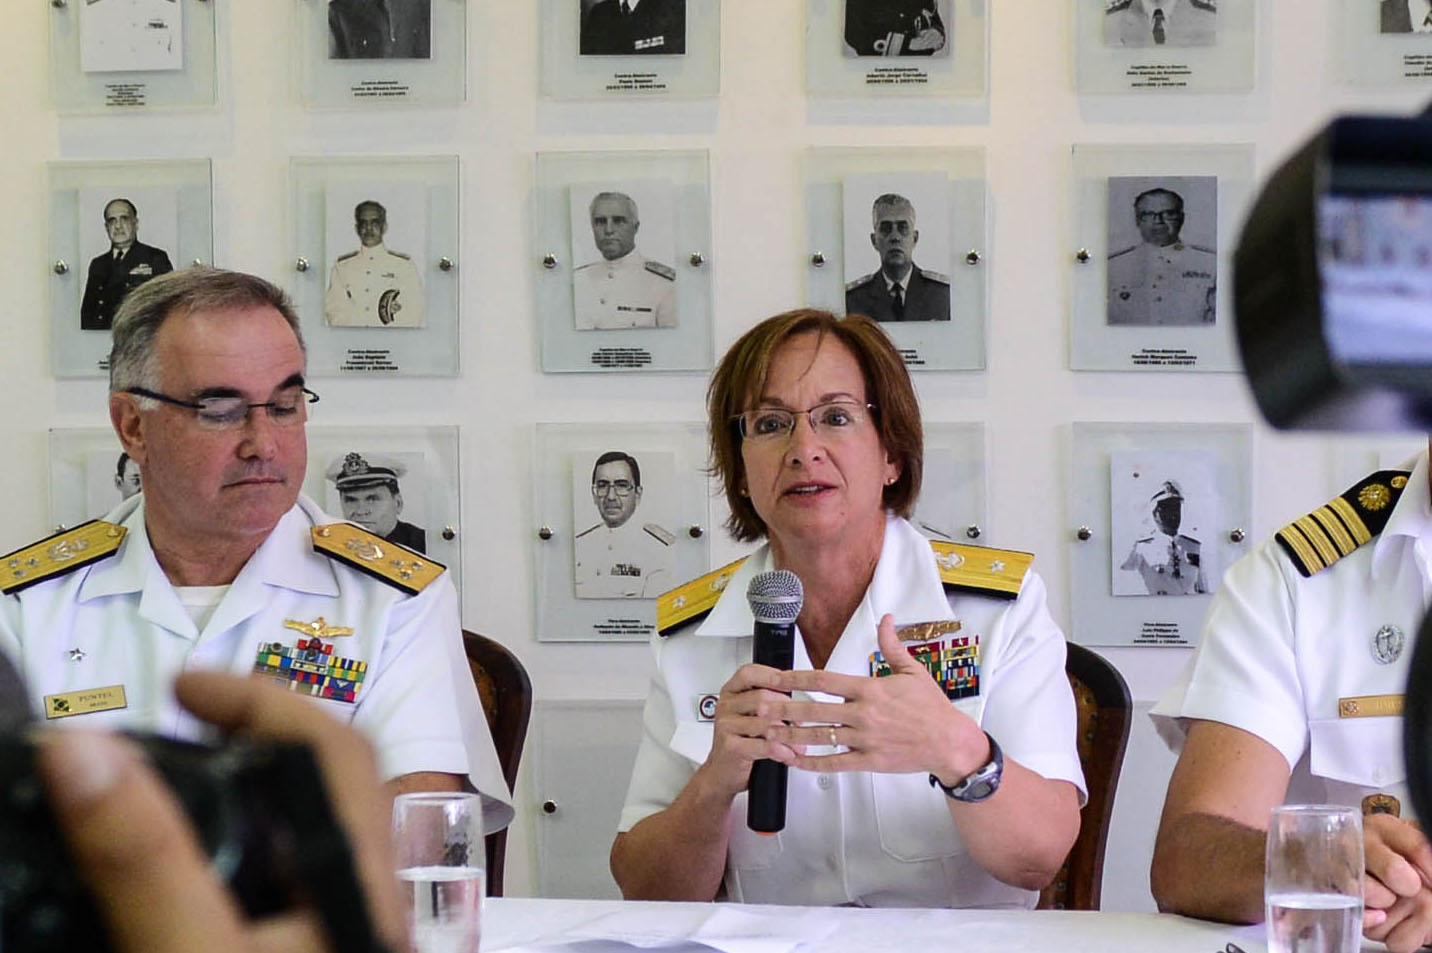 151114-N-WO404-265 ATLANTIC OCEAN (Nov. 14, 2015) Rear Adm. Lisa Franchetti, commander of Carrier Strike Group Nine, answers questions during a press conference for UNITAS 2015. UNITAS 2015, the U.S. Navy's longest running annual multinational maritime exercise, is part of the Southern Seas deployment planned by U.S. Naval Forces Southern Command/U.S. 4th Fleet. This 56th iteration of UNITAS is conducted in two phases: UNITAS PACIFIC, hosted by Chile in October 2015 and UNITAS Atlantic hosted by Brazil in November. (U.S. Navy photo by Mass Communication Specialist 3rd Class Jonathan Aaron Nelson/Released)